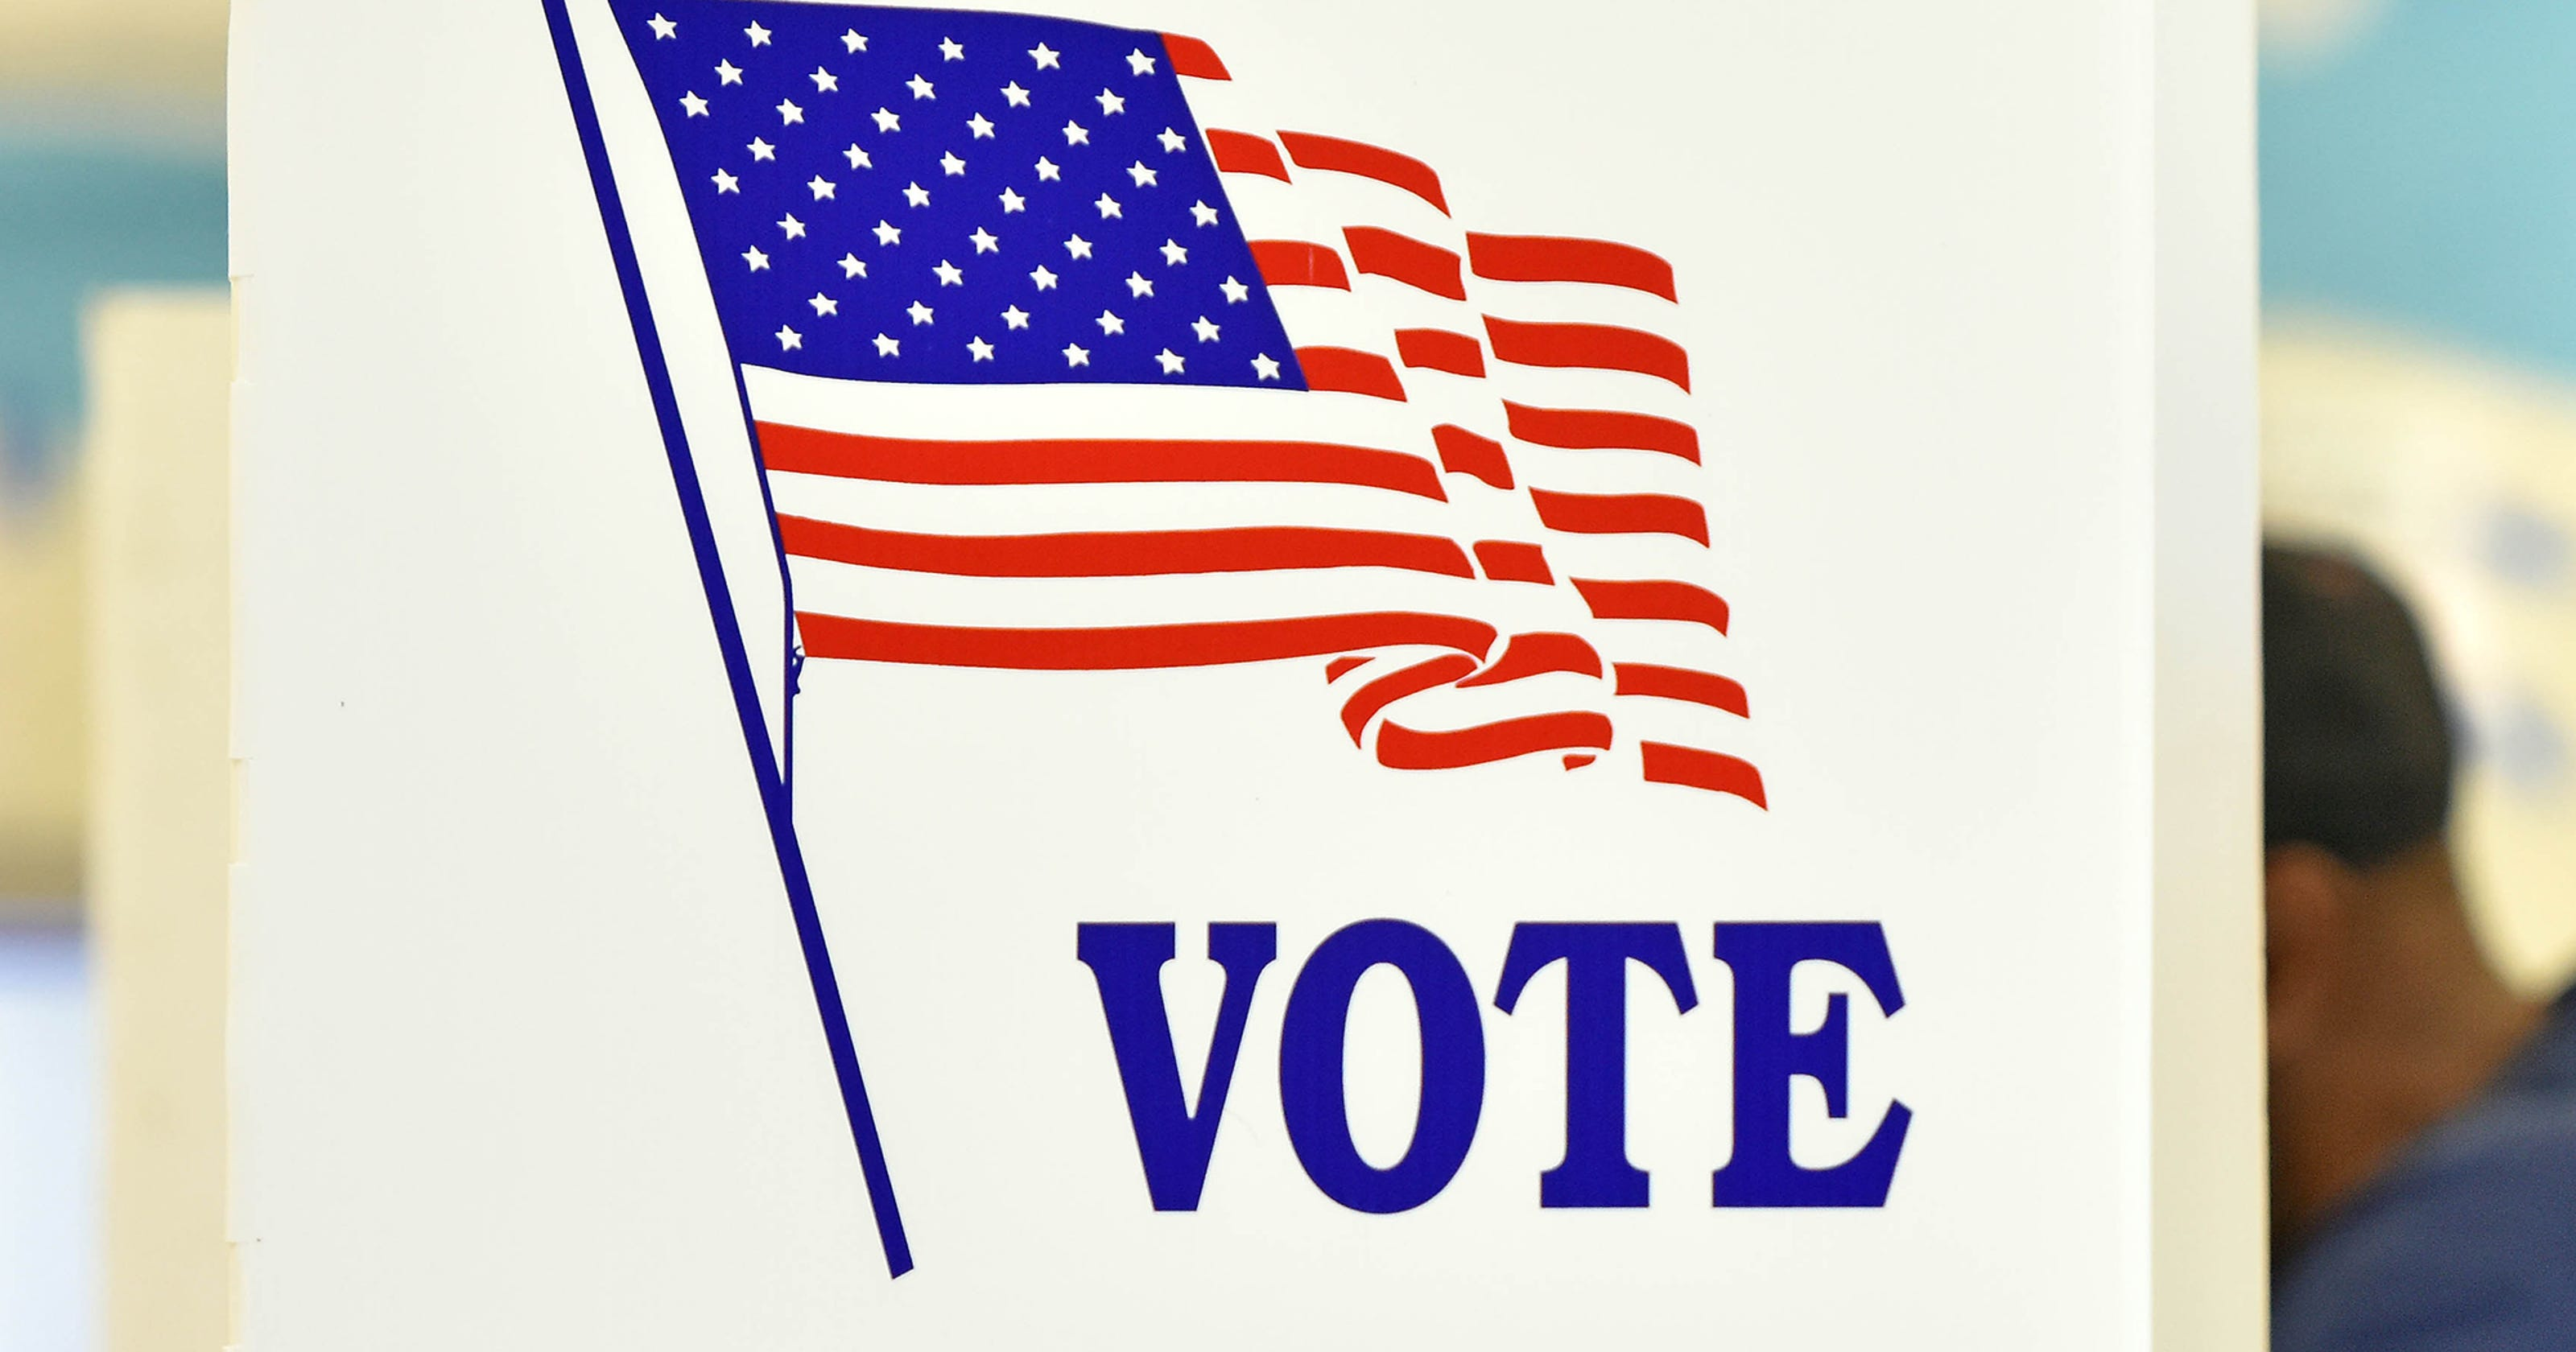 Vote Tuesday >> Vote Tuesday Sample Ballots Polling Places Candidates For Congress